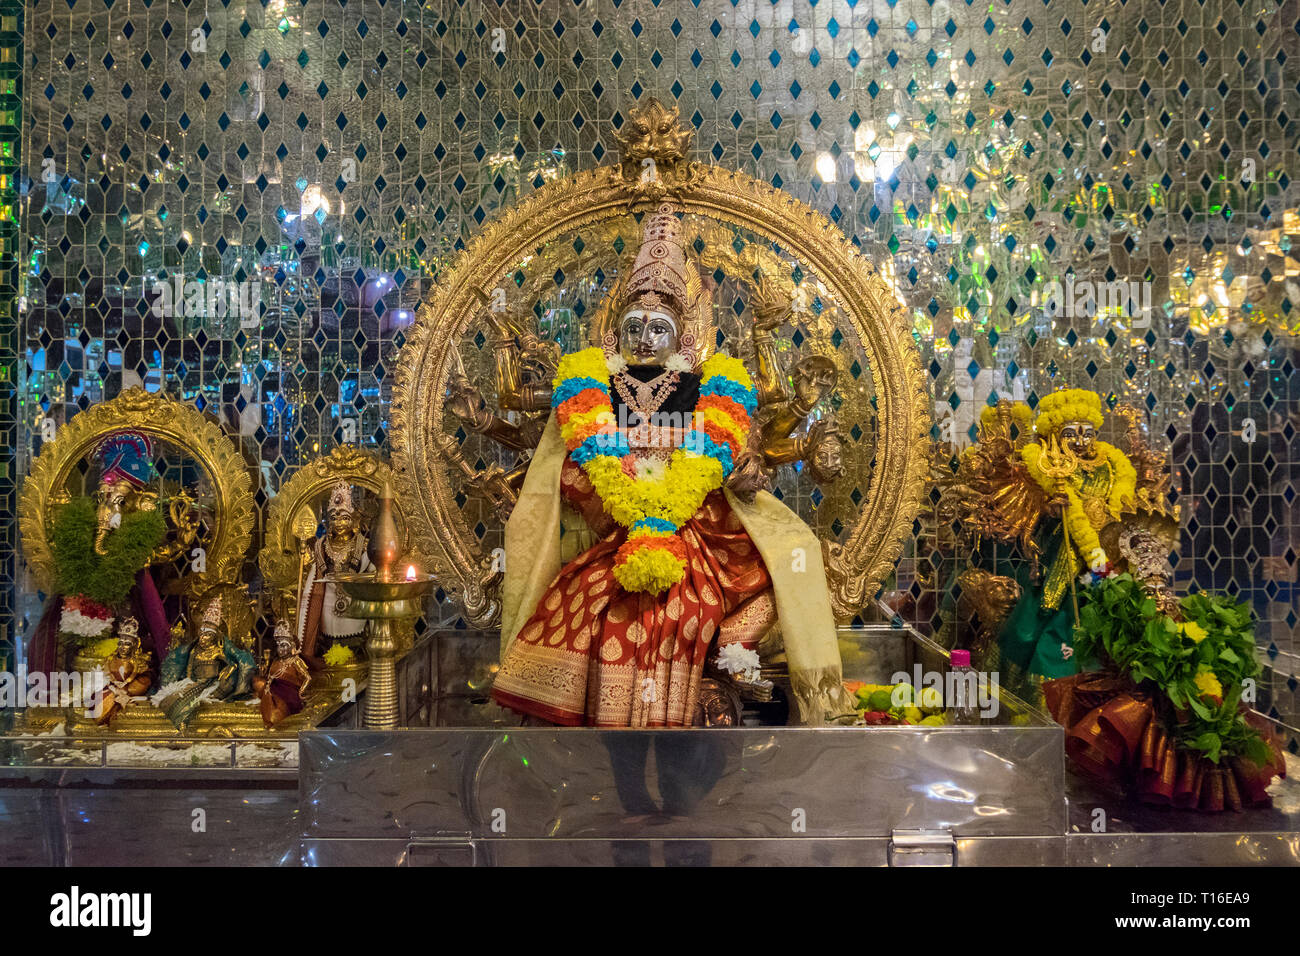 The unique Arulmigu Sri Rajakaliamman Glass Temple in Johor Bahru, Malaysia. The interior is completely covered in glass tiles. Icon detail. - Stock Image